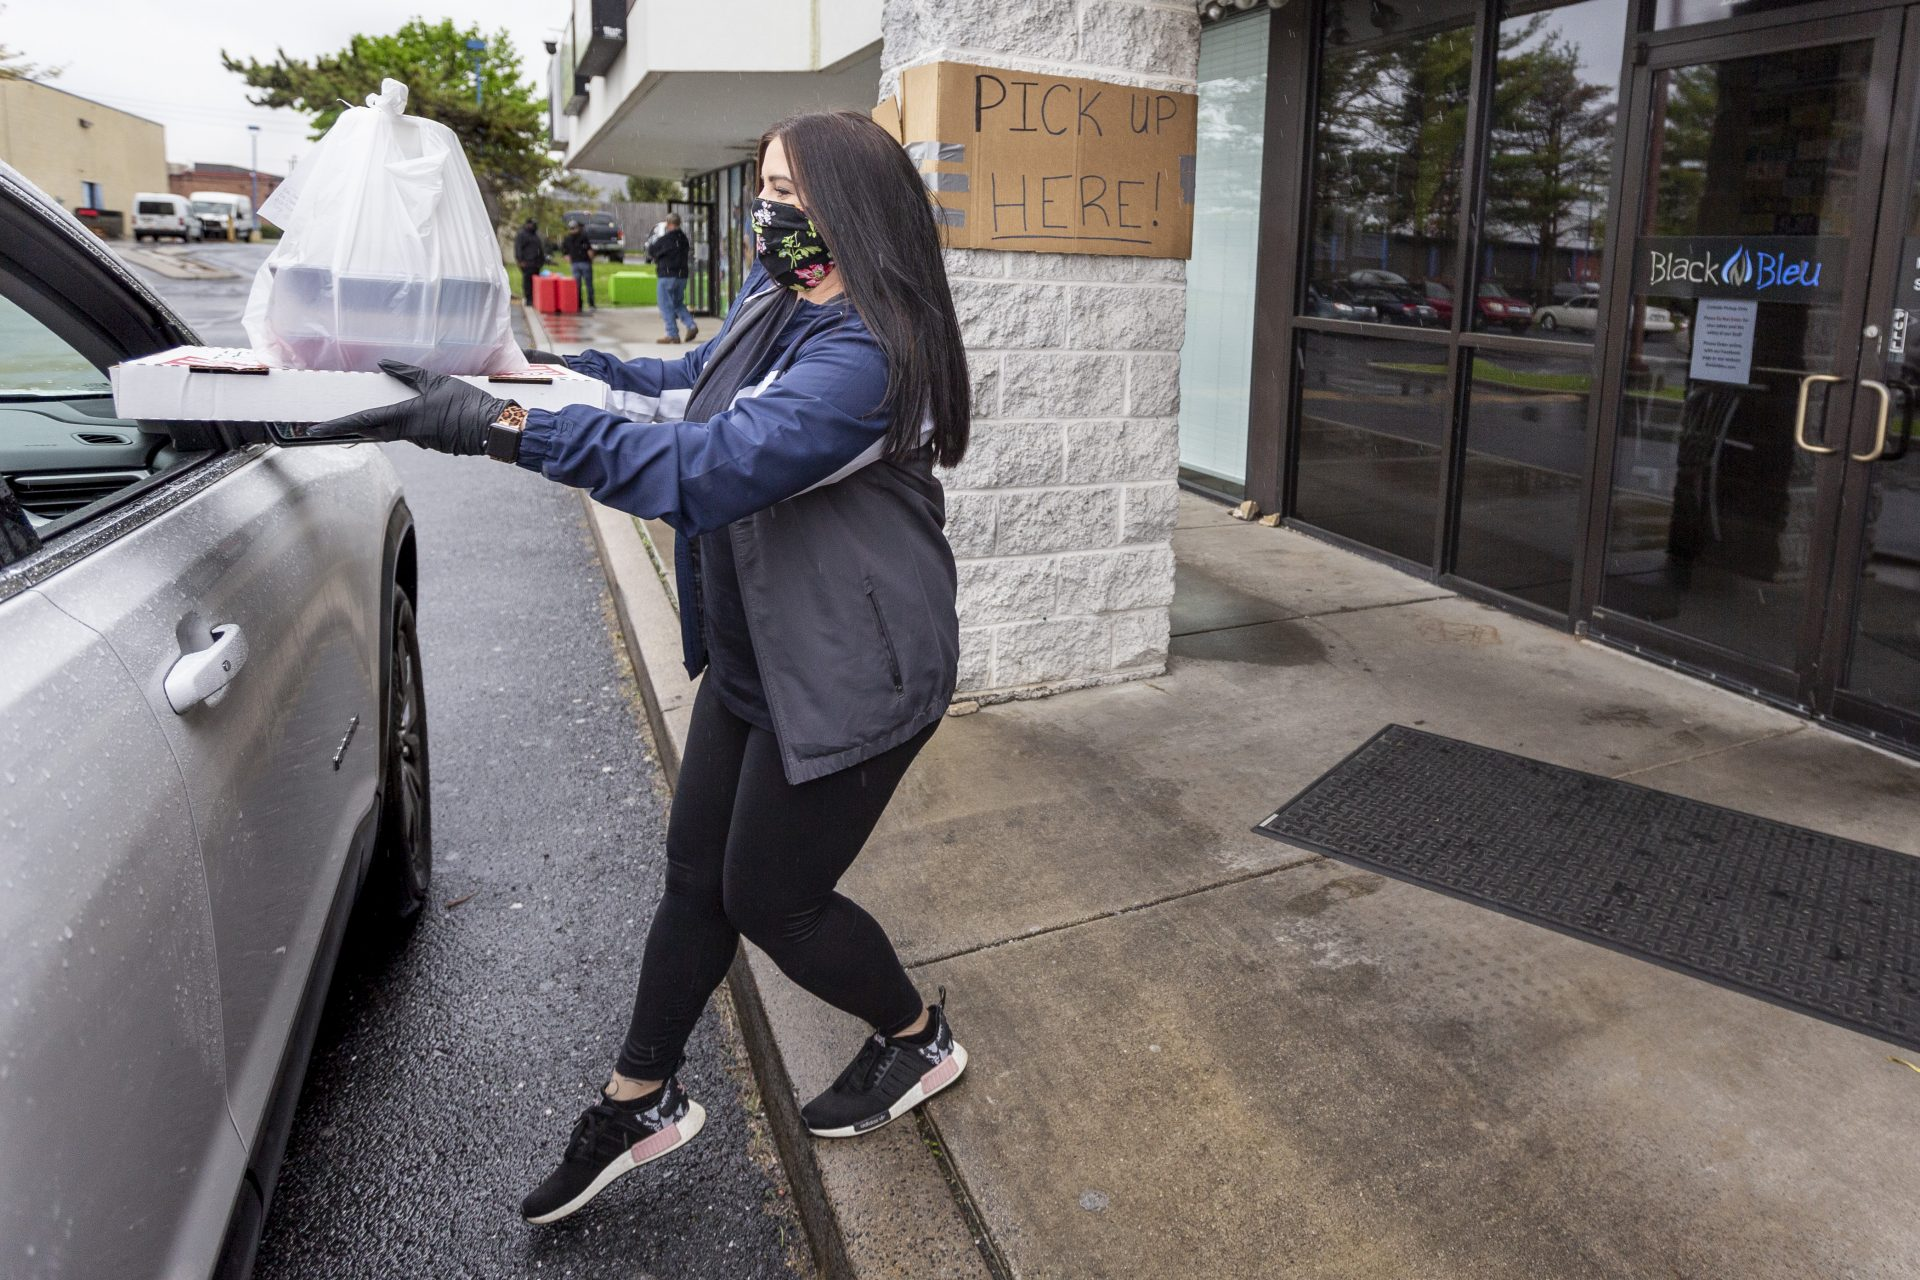 Jordan Copenhaver delivers take out to a car outside of Black 'n Bleu in Mechanicsburg on May 6, 2020. The restaurant has adapted to serving take out only during the COVID-19 pandemic.